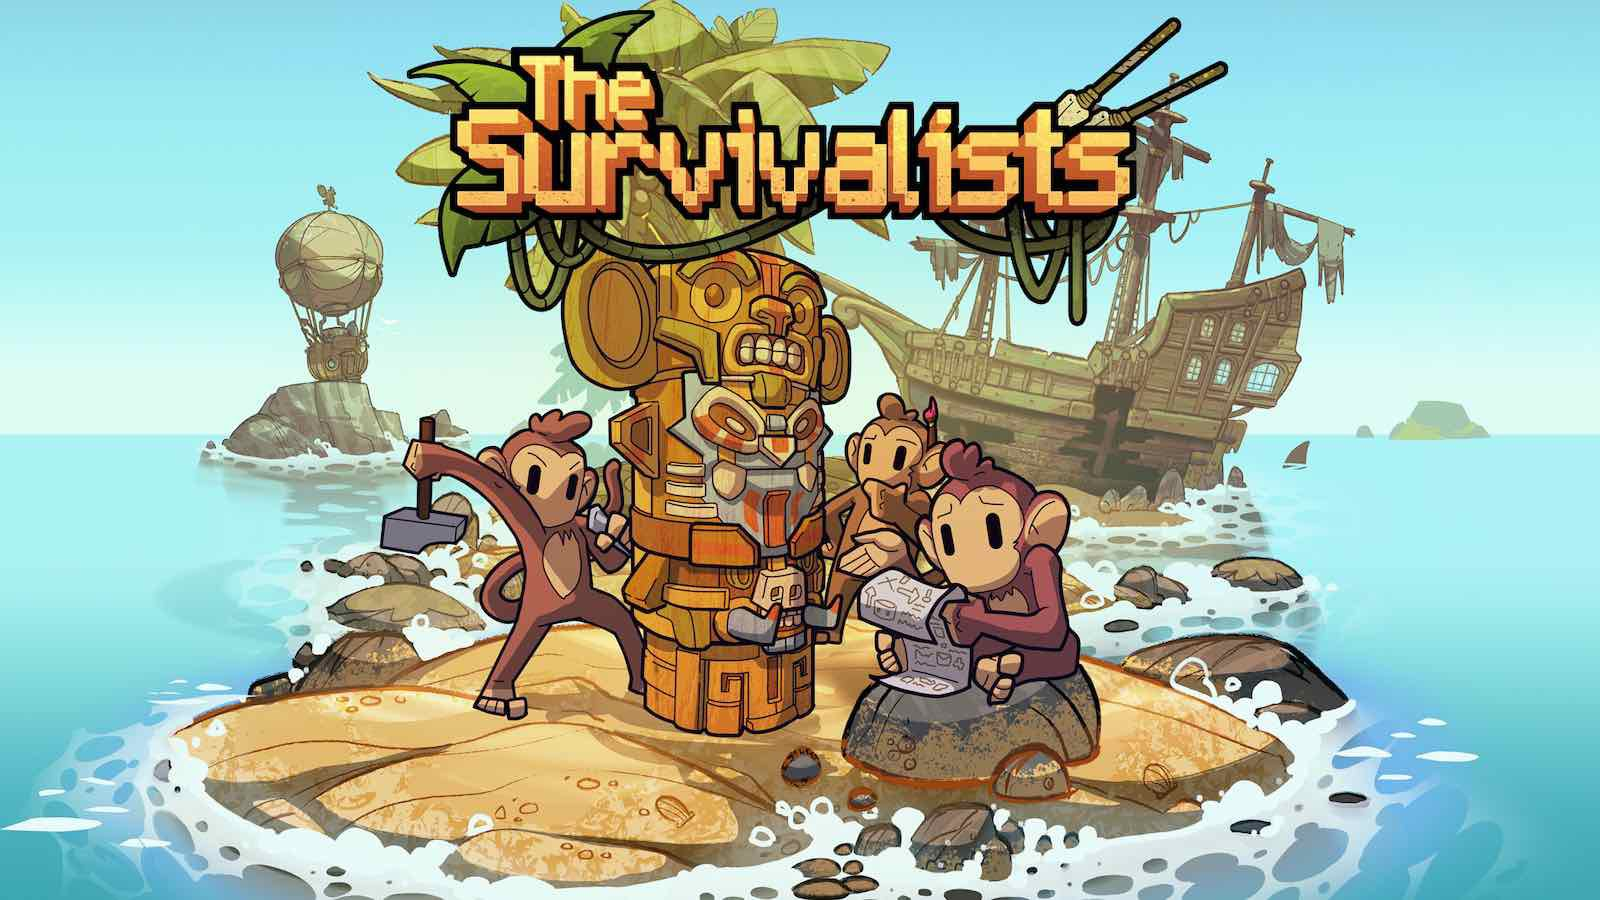 Island-Themed Sandbox Game 'The Survivalists' Debuts on Apple Arcade